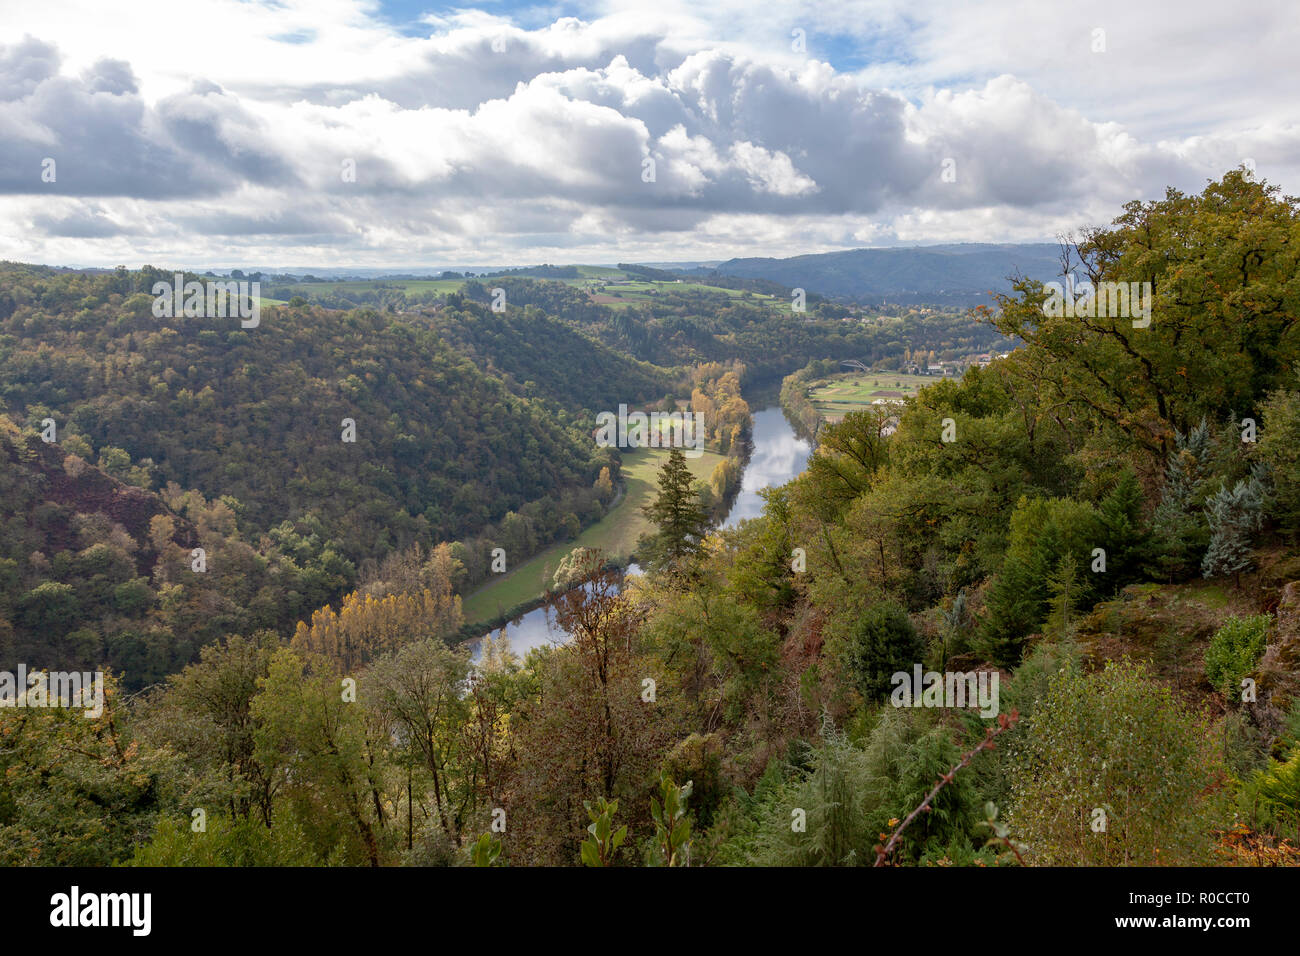 """The valley of the Lot river, in Autumn (France). Near the """"Port d'Agrès"""", the Lot -  tributary of the Garonne river - flows peacefully towards West. Stock Photo"""